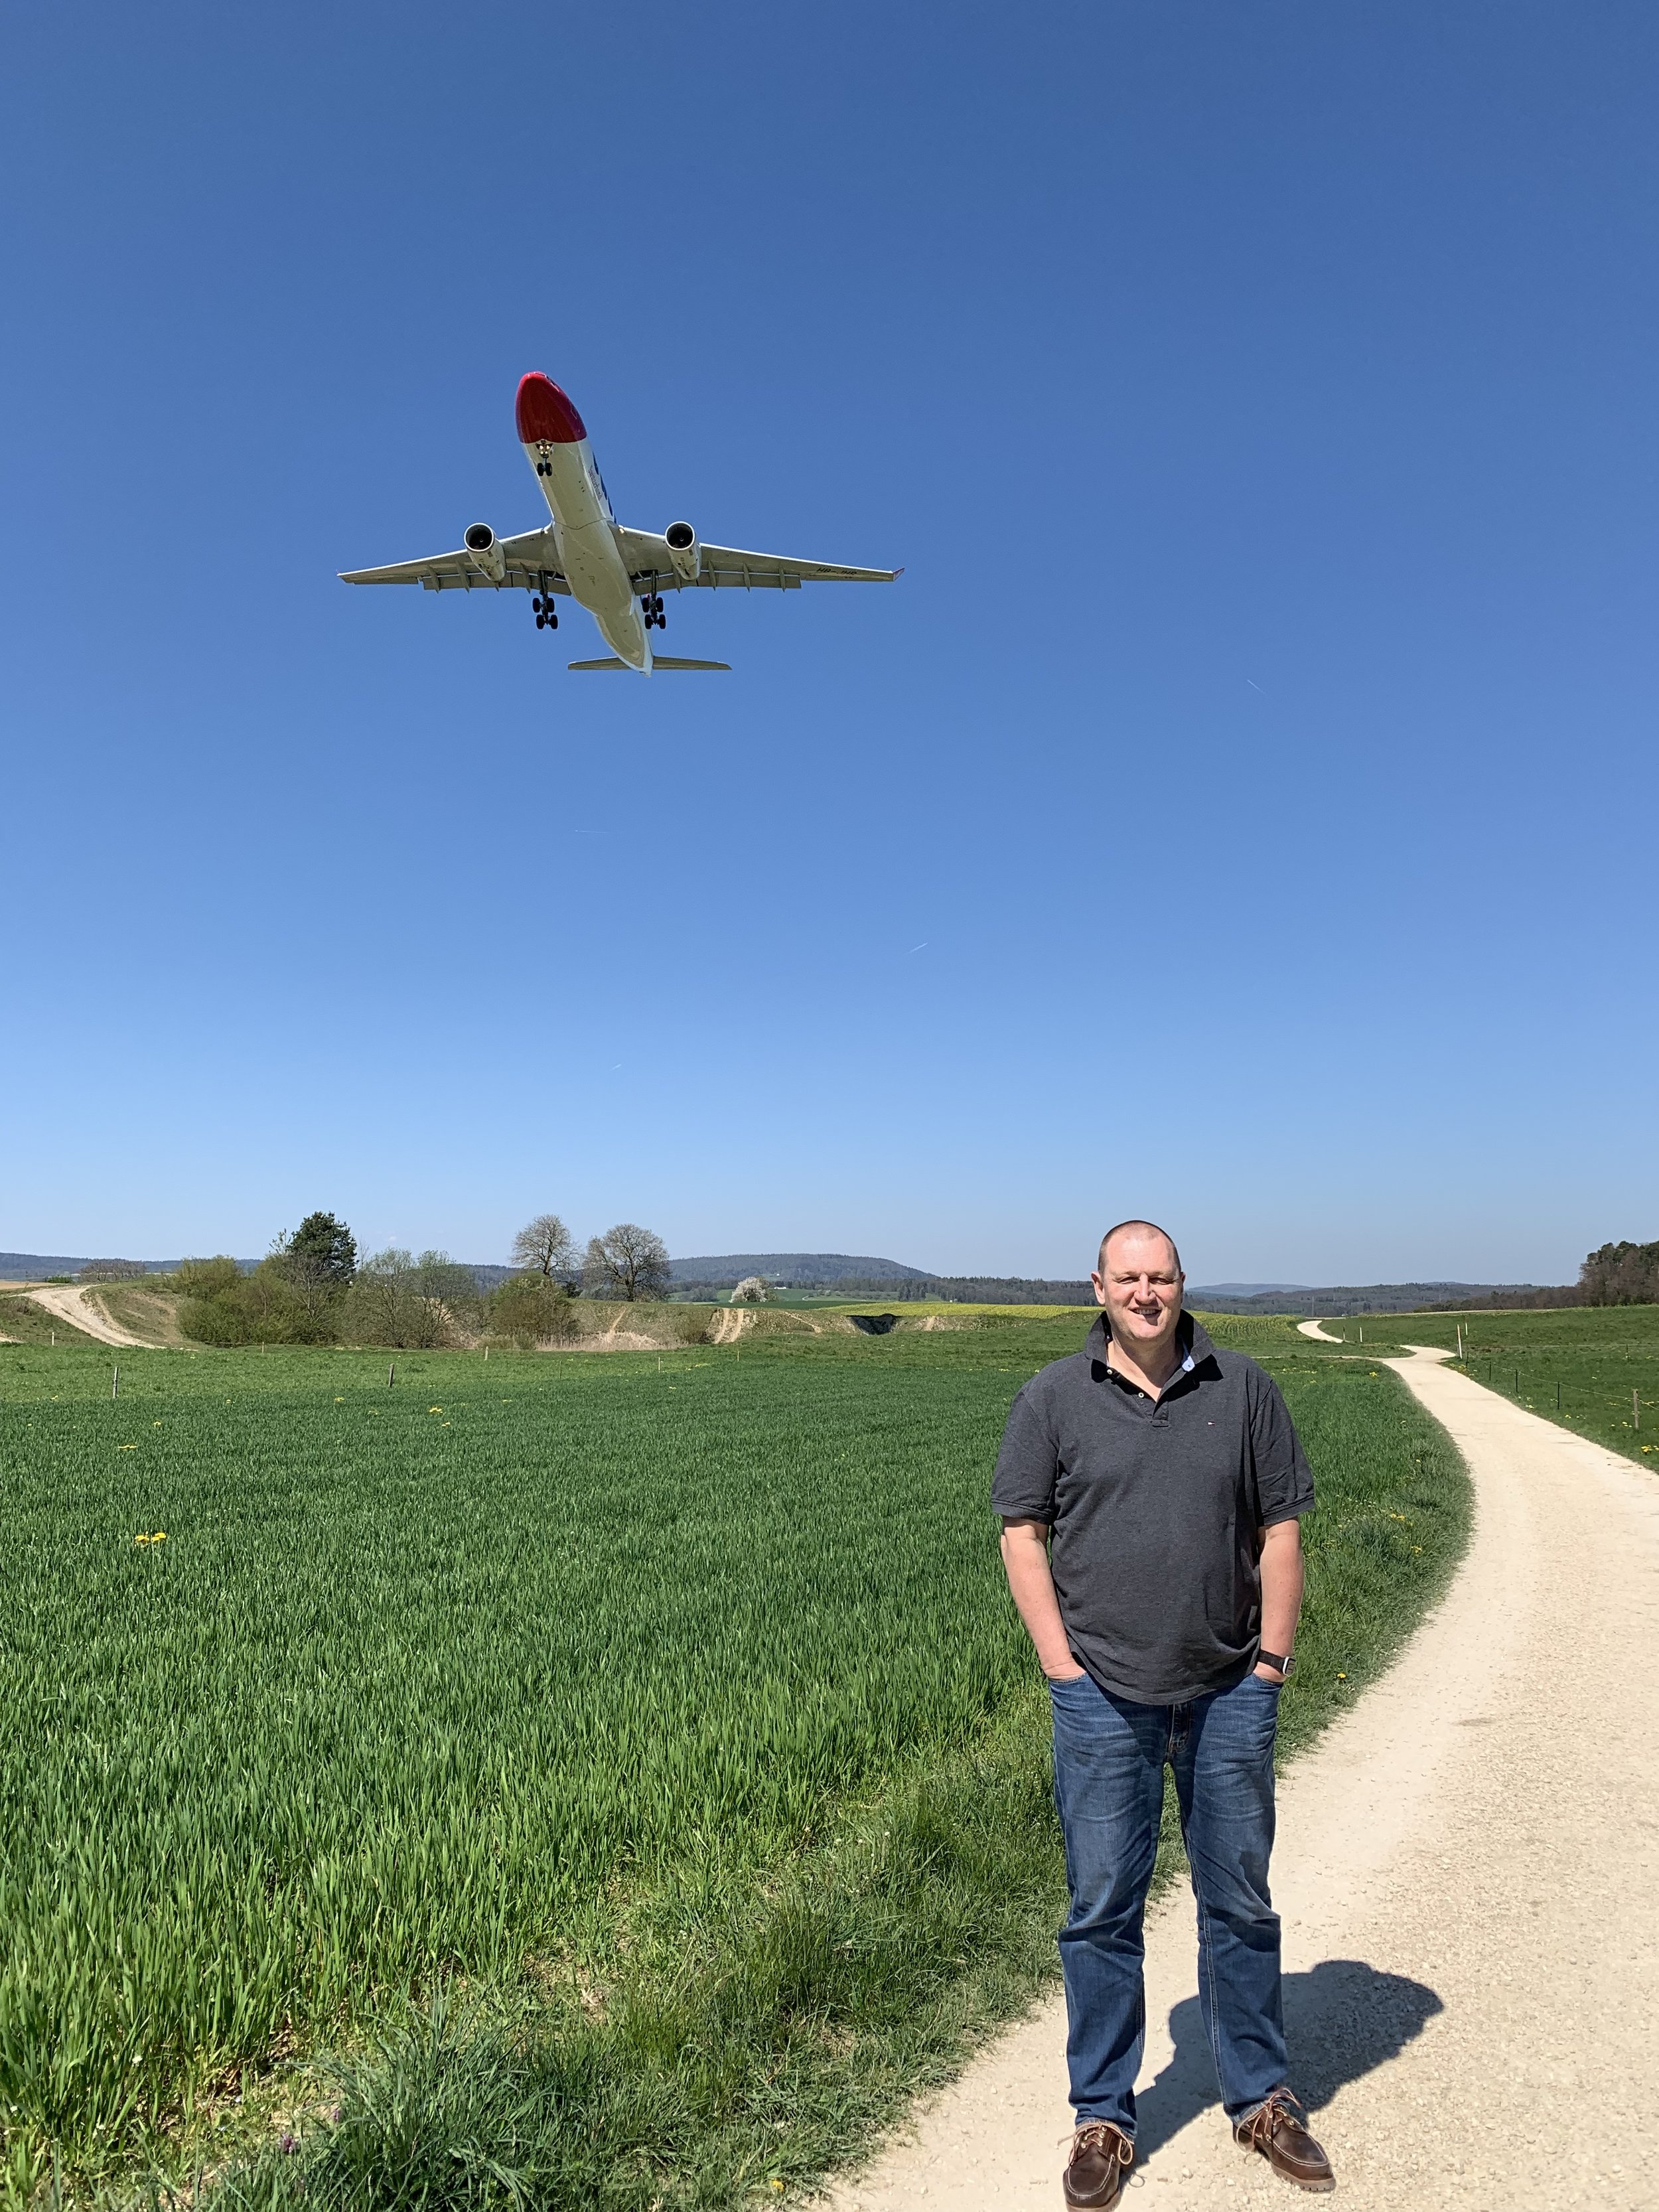 Christoph at one of his favourite walking paths near the Zurich airport; a popular plane-spotting location.